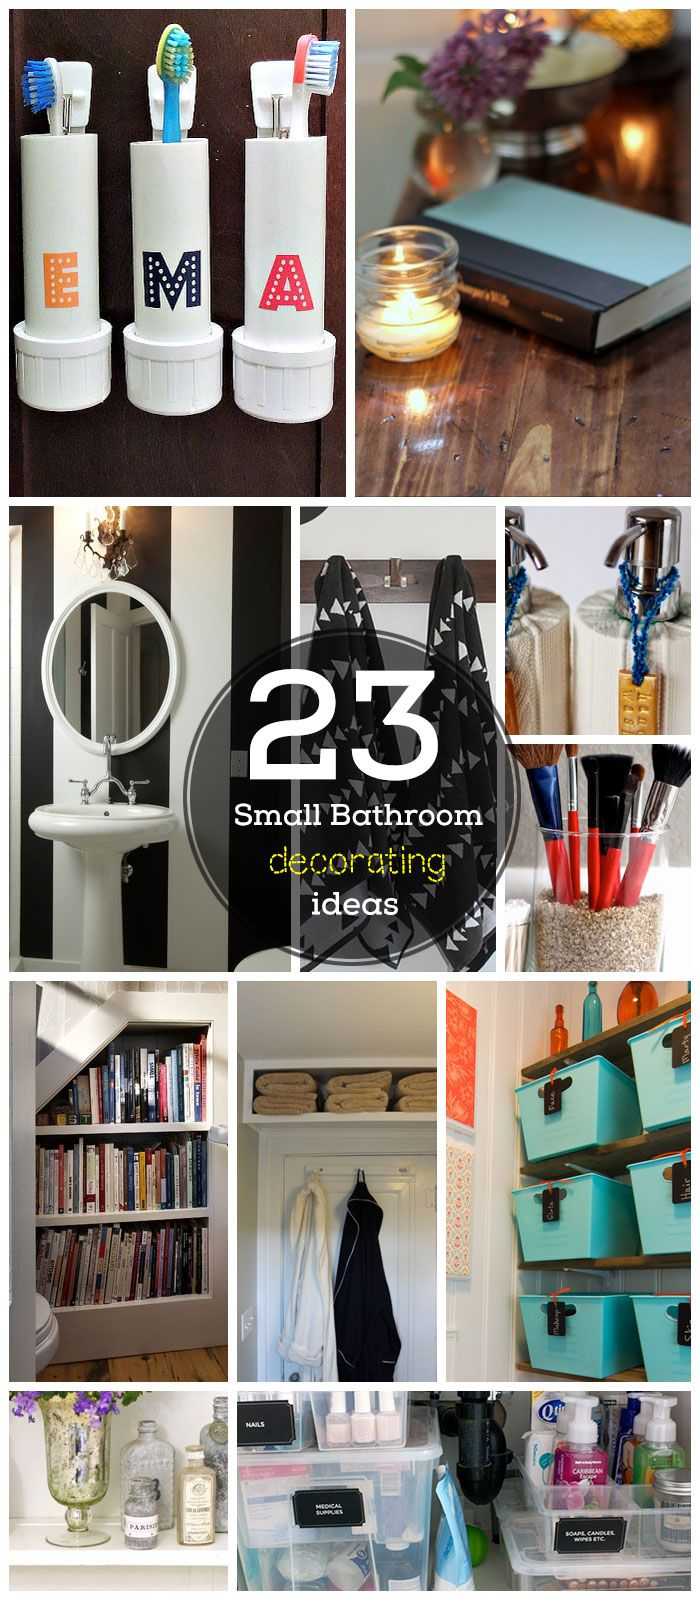 23 Small Bathroom Decorating Ideas on a Budget. I'm Addicted To Containers!